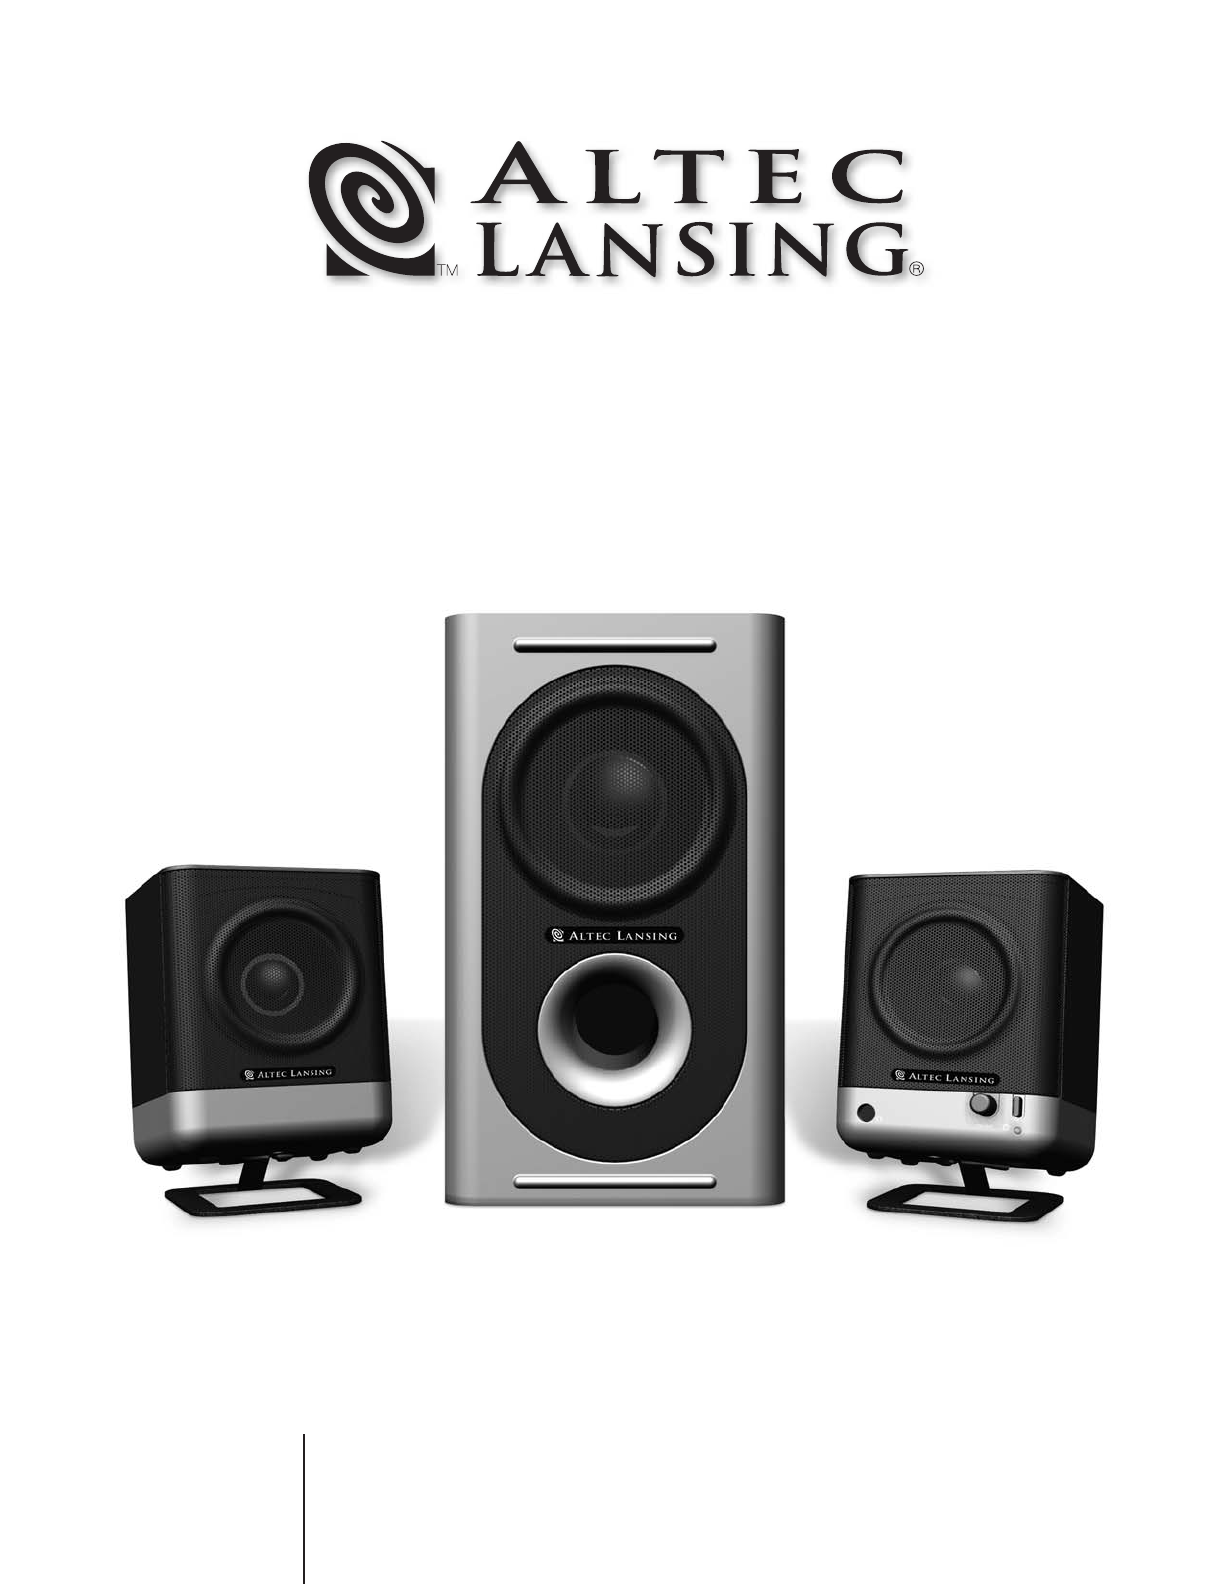 hook up lansing Altec lansing will, at its option, repair or replace any product that proves to be defective in material or workmanship sign up restore password.